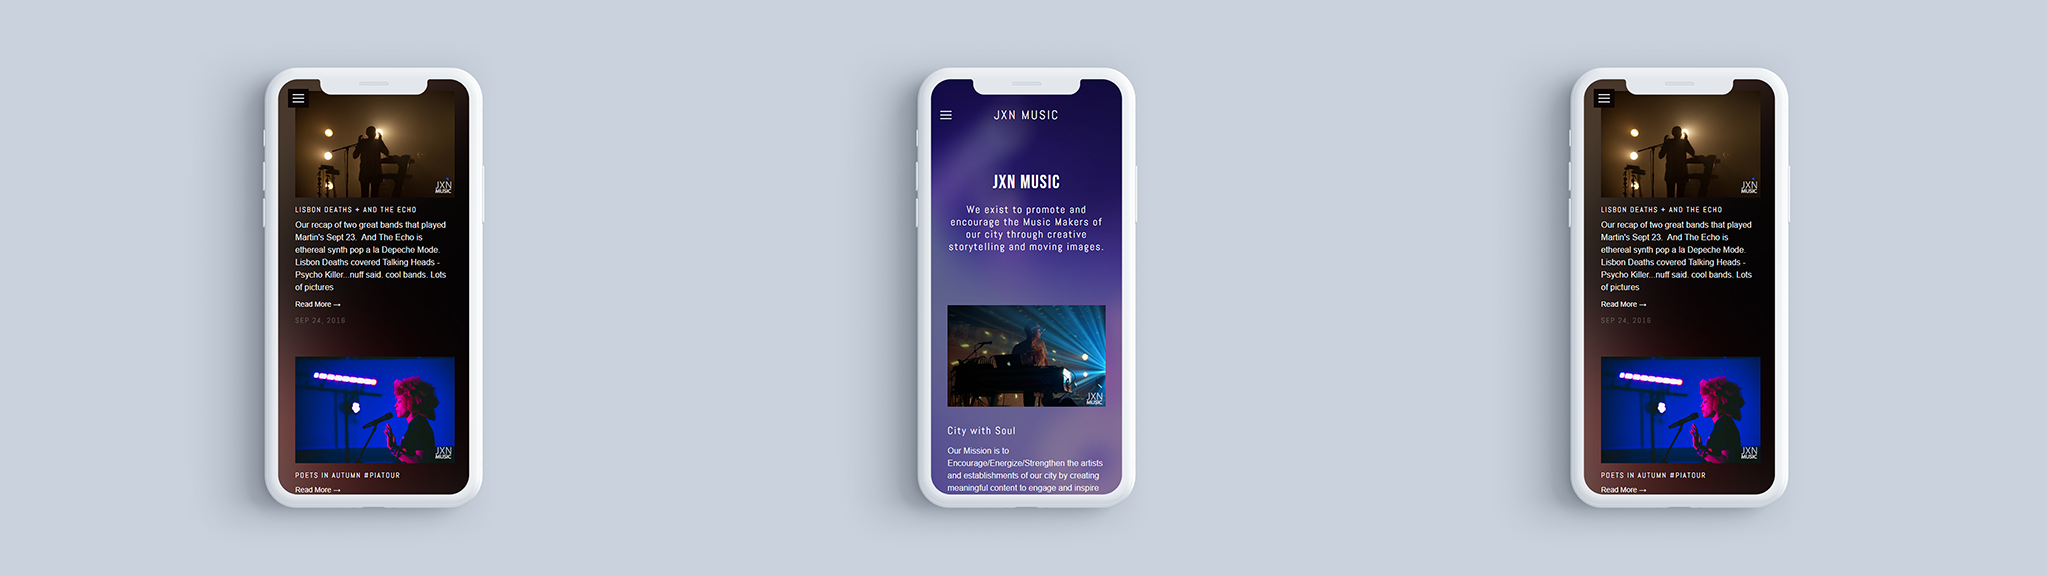 iphone mockup 9.png